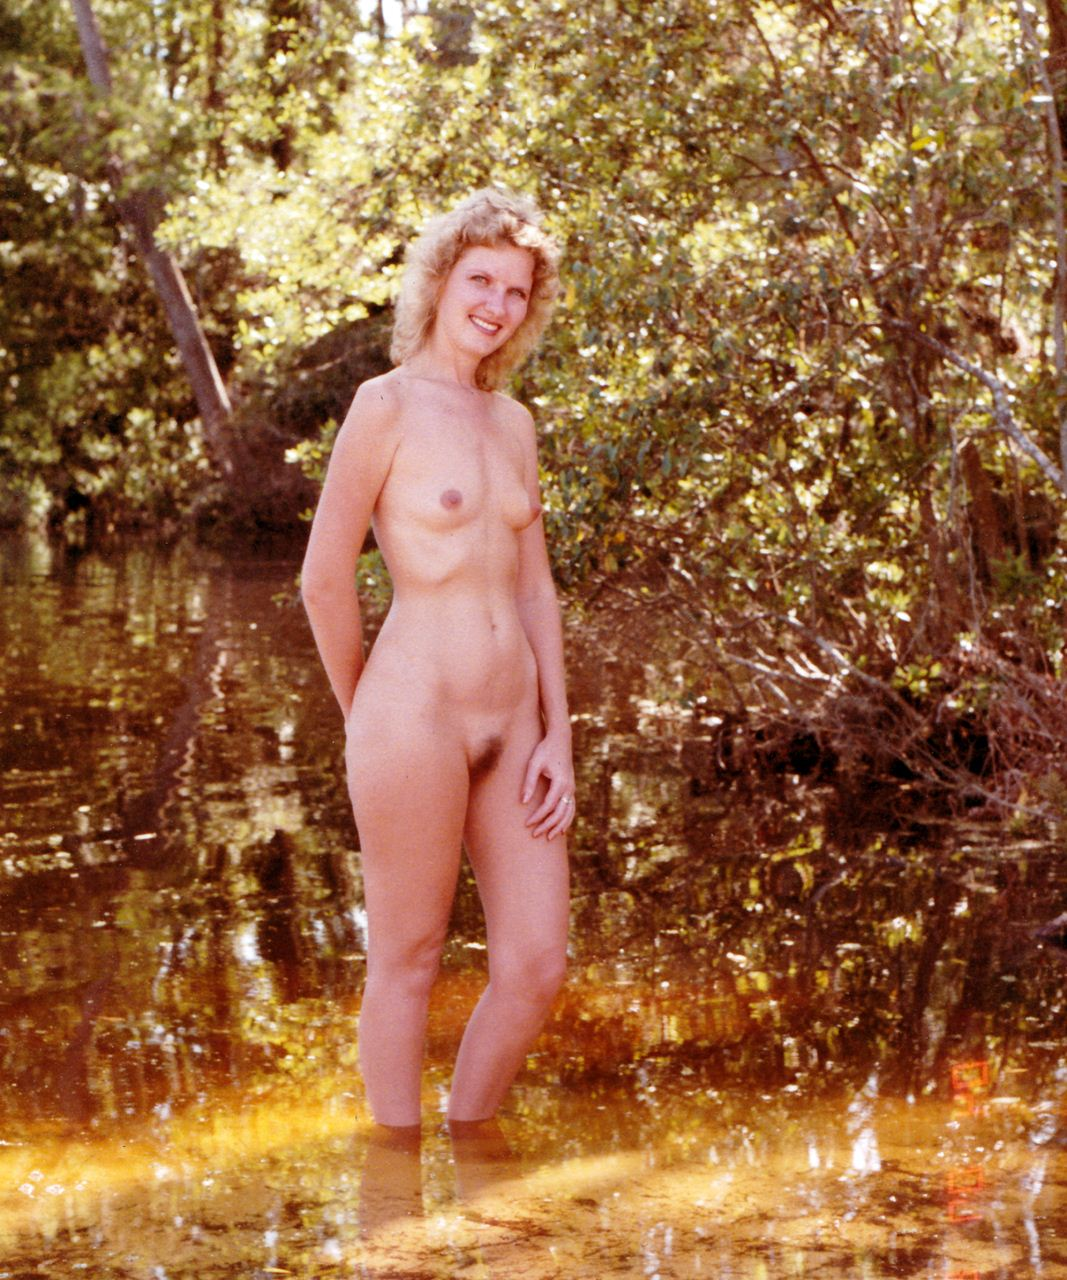 Diary of a Nudist: Nudist Photos of the Day 06/11/11 - Nude in Nature